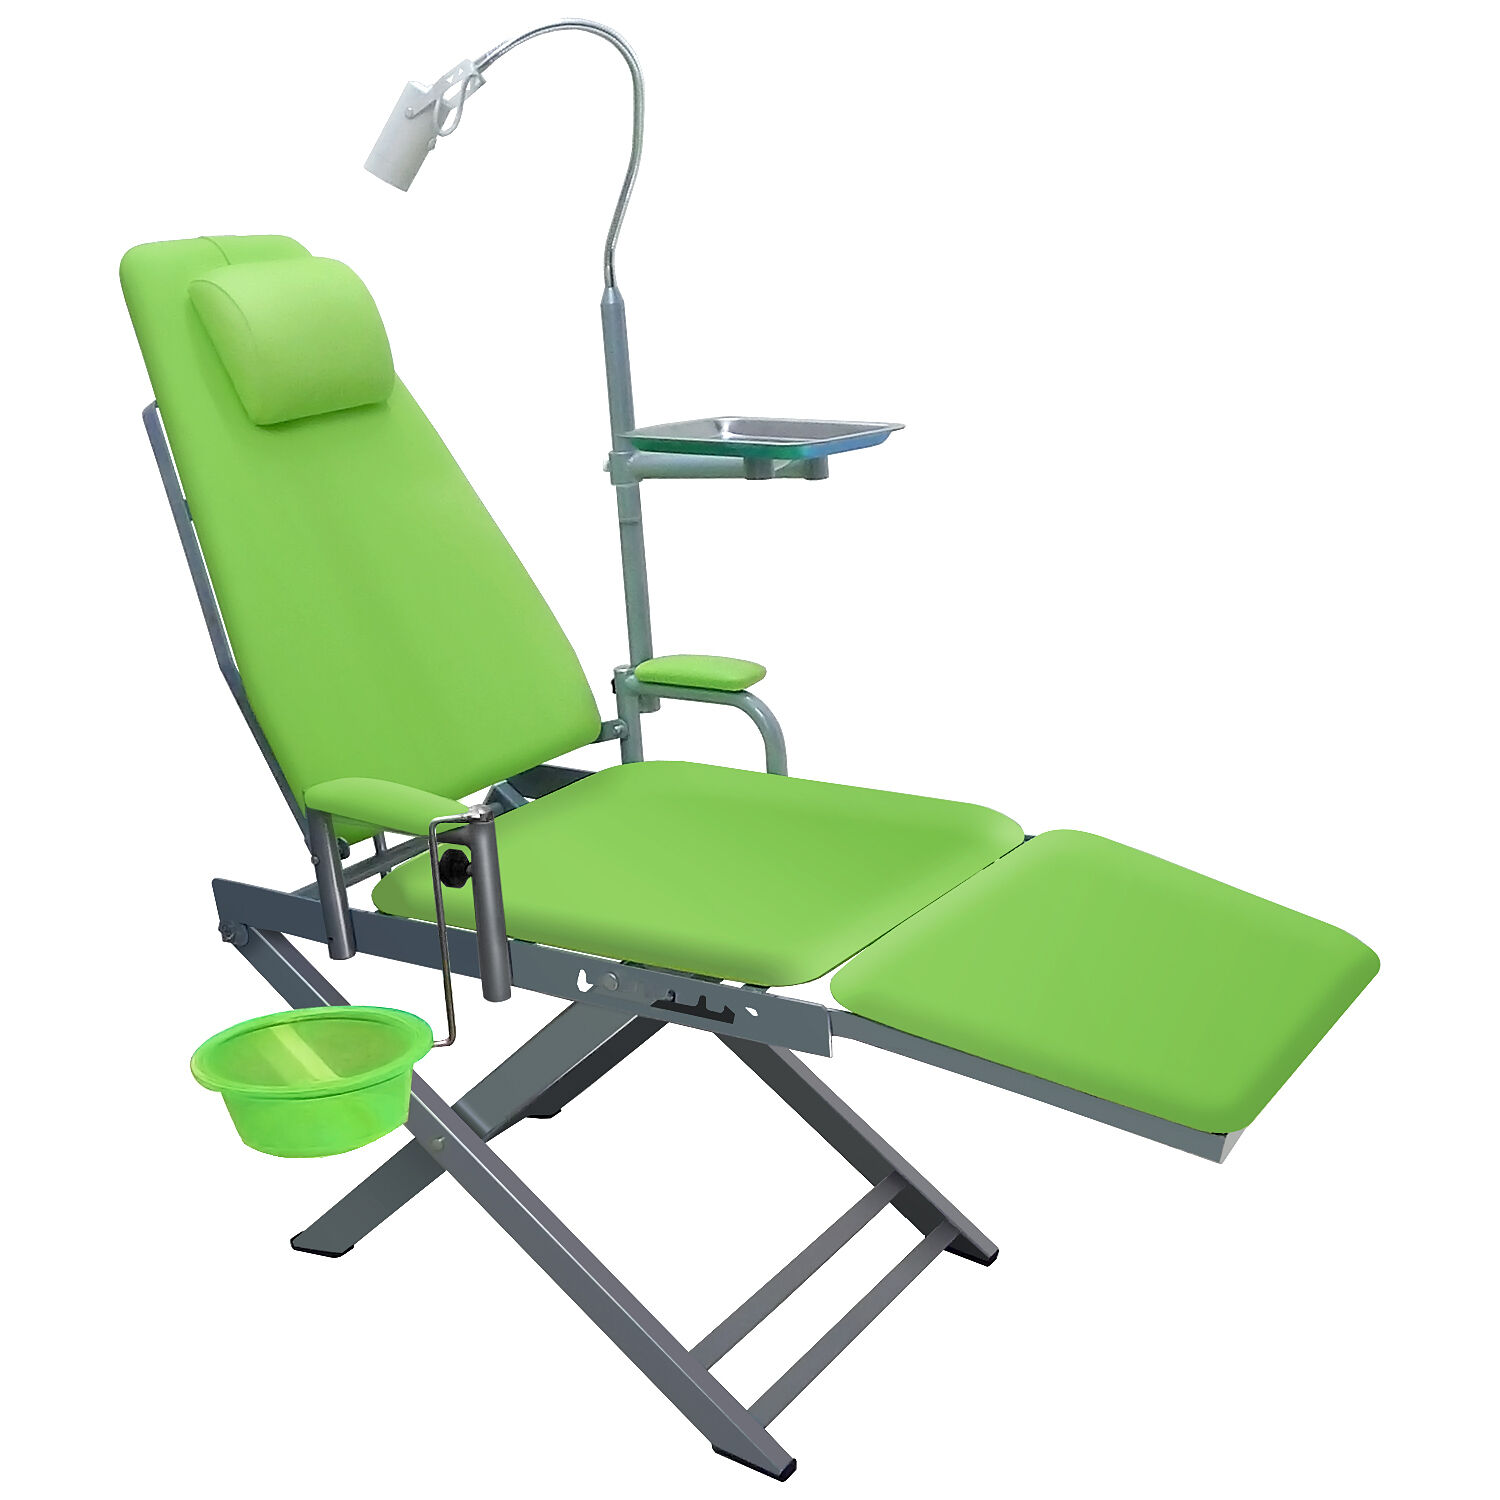 portable dental chair philippines office white led cold light cuspidor tray dentistry mobile description